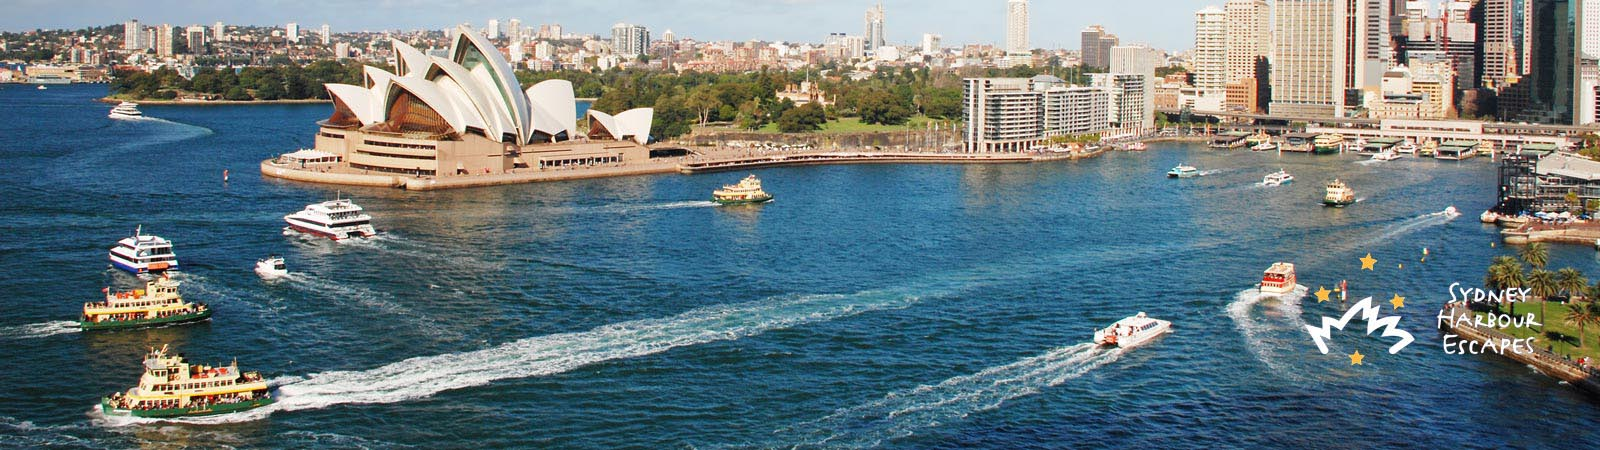 Sydney Harbour water transfers